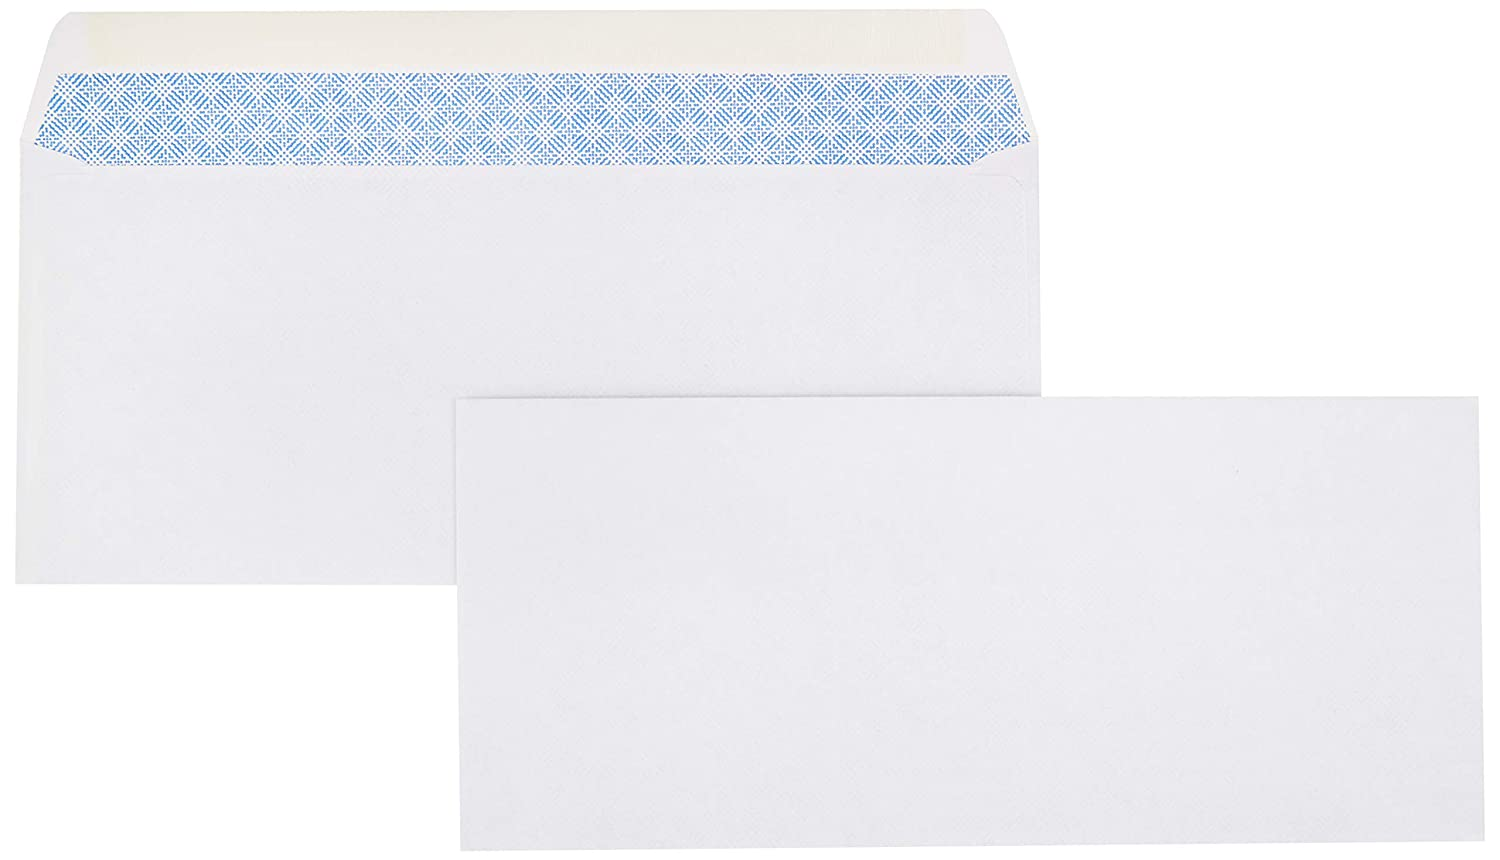 AmazonBasics #9 Envelopes, Gummed Seal, Security Tinted, 100-Pack